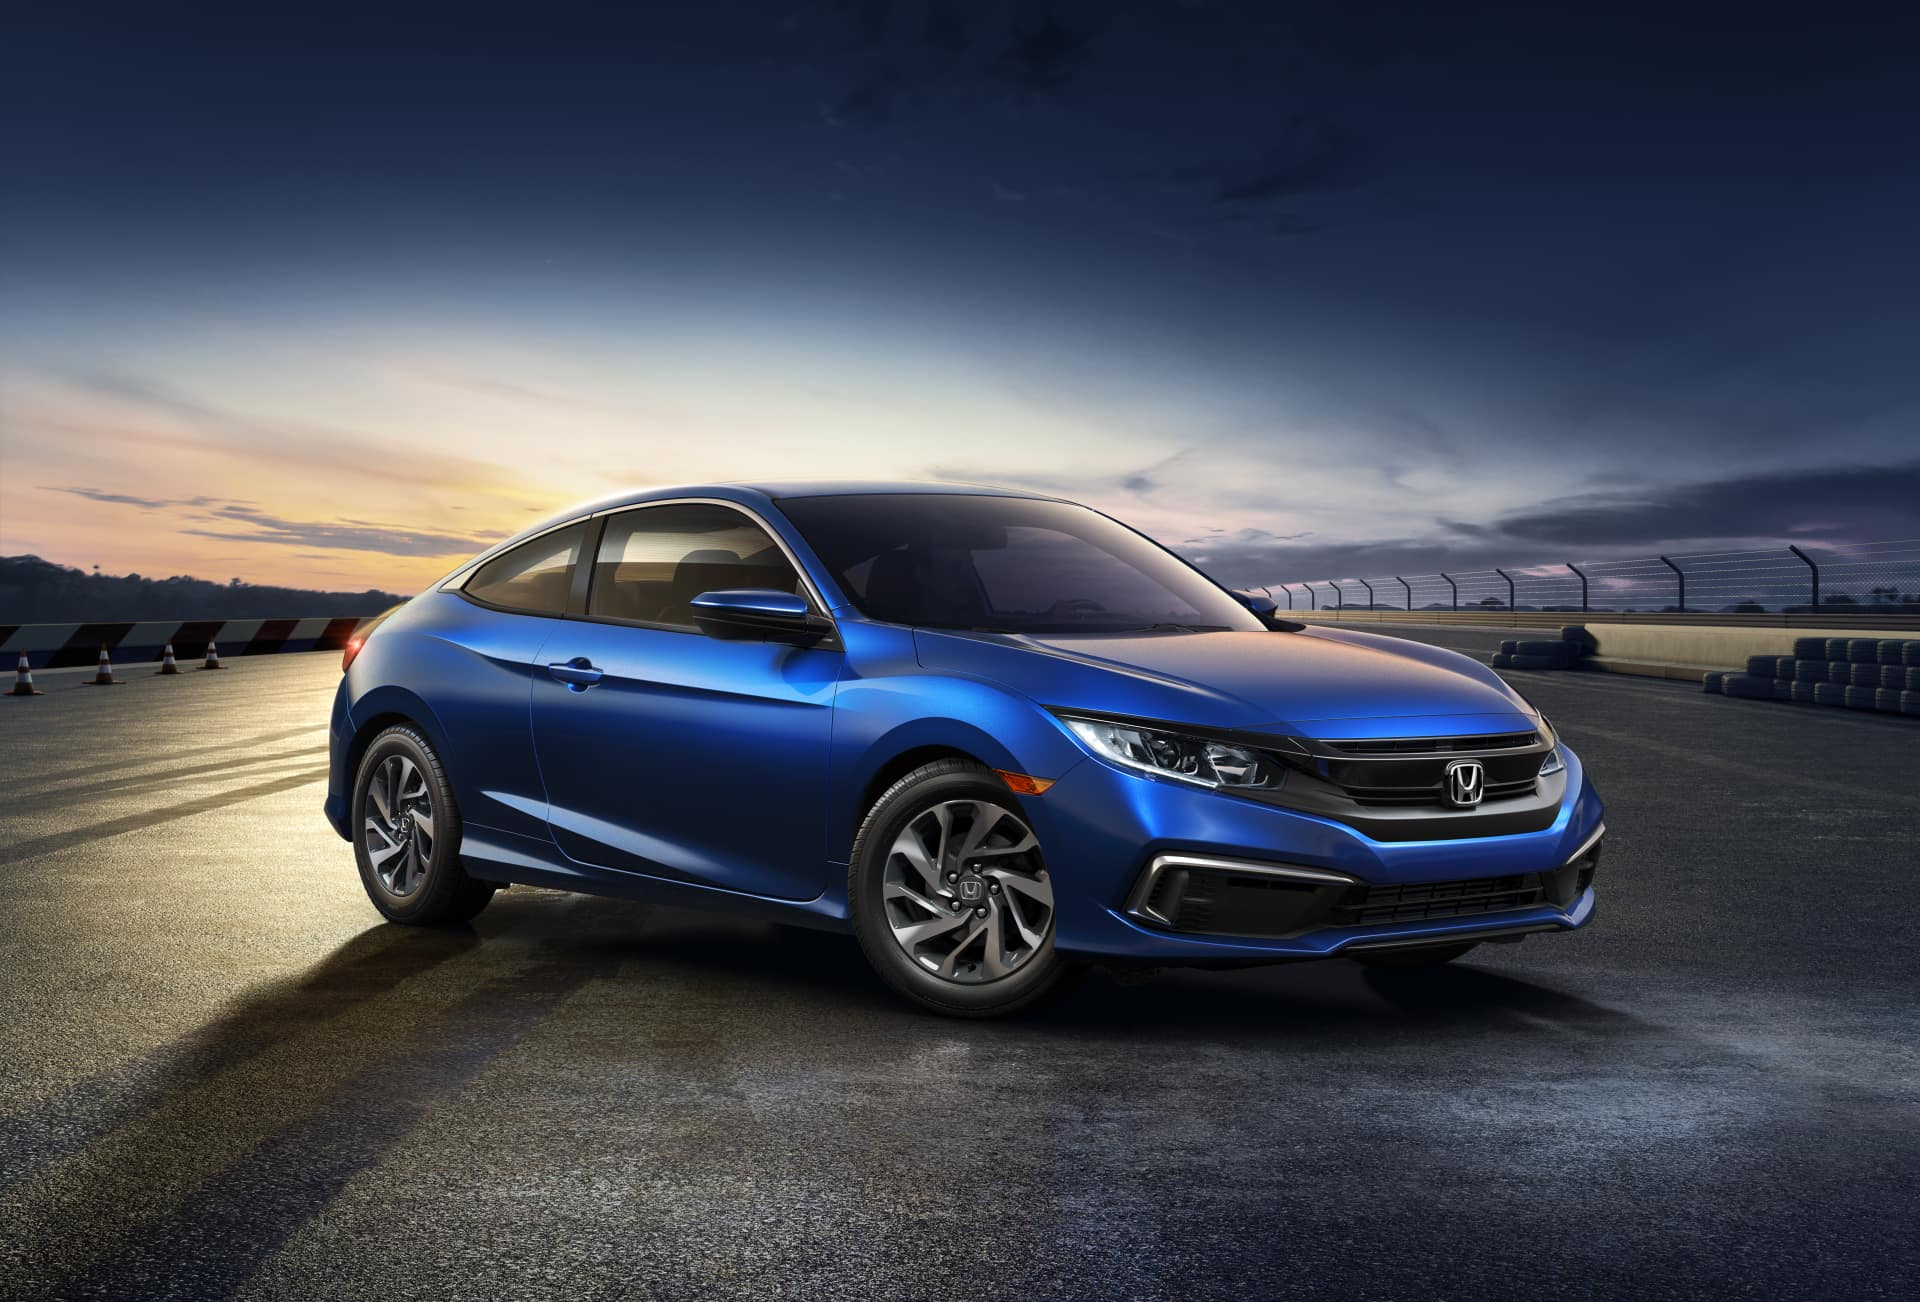 Honda Dominates 2019 Consumer Guide Automotive Best Buy Awards